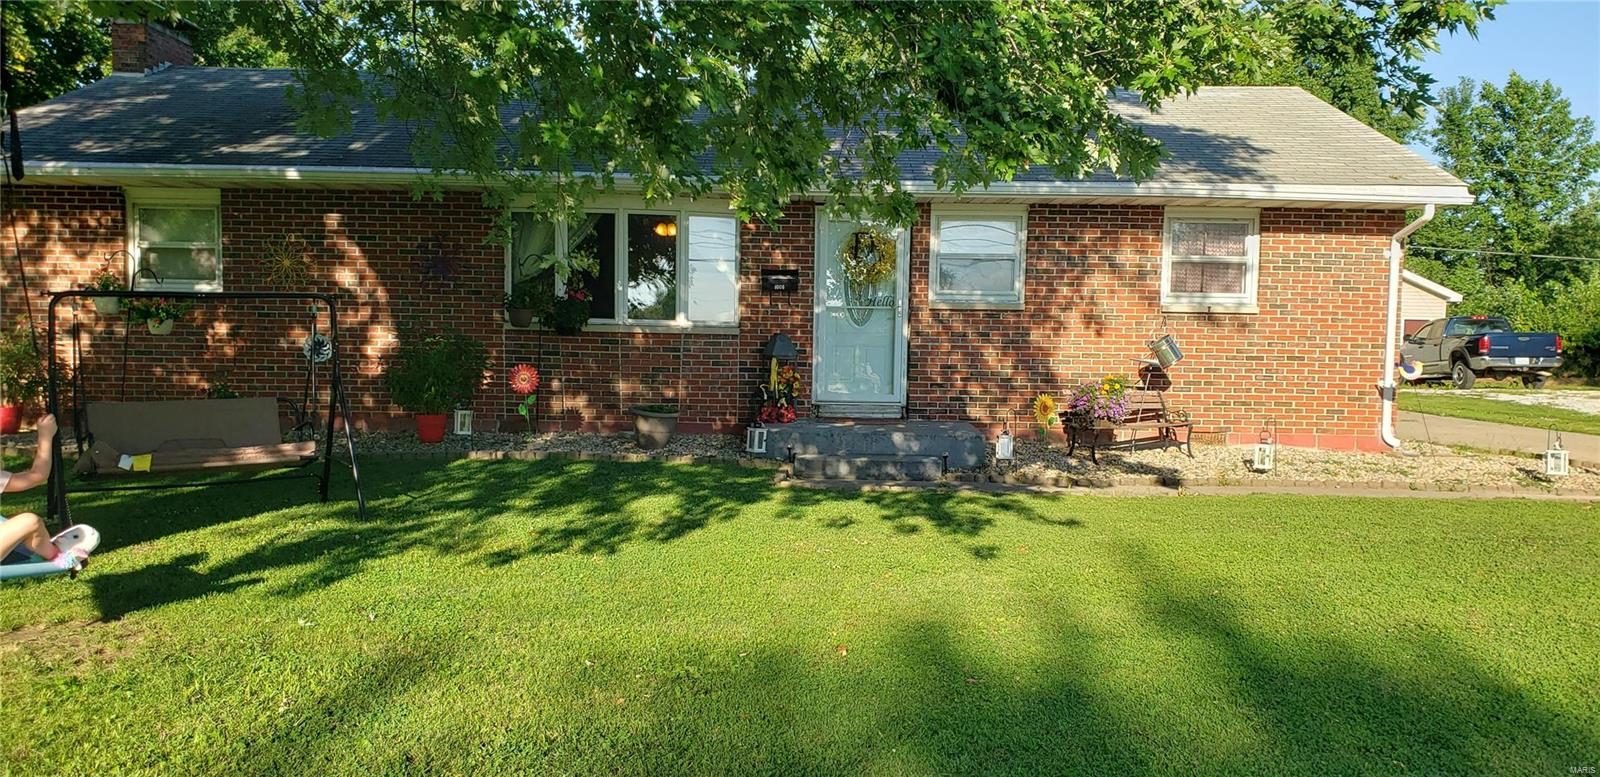 1006 5th Street Property Photo - Carrollton, IL real estate listing